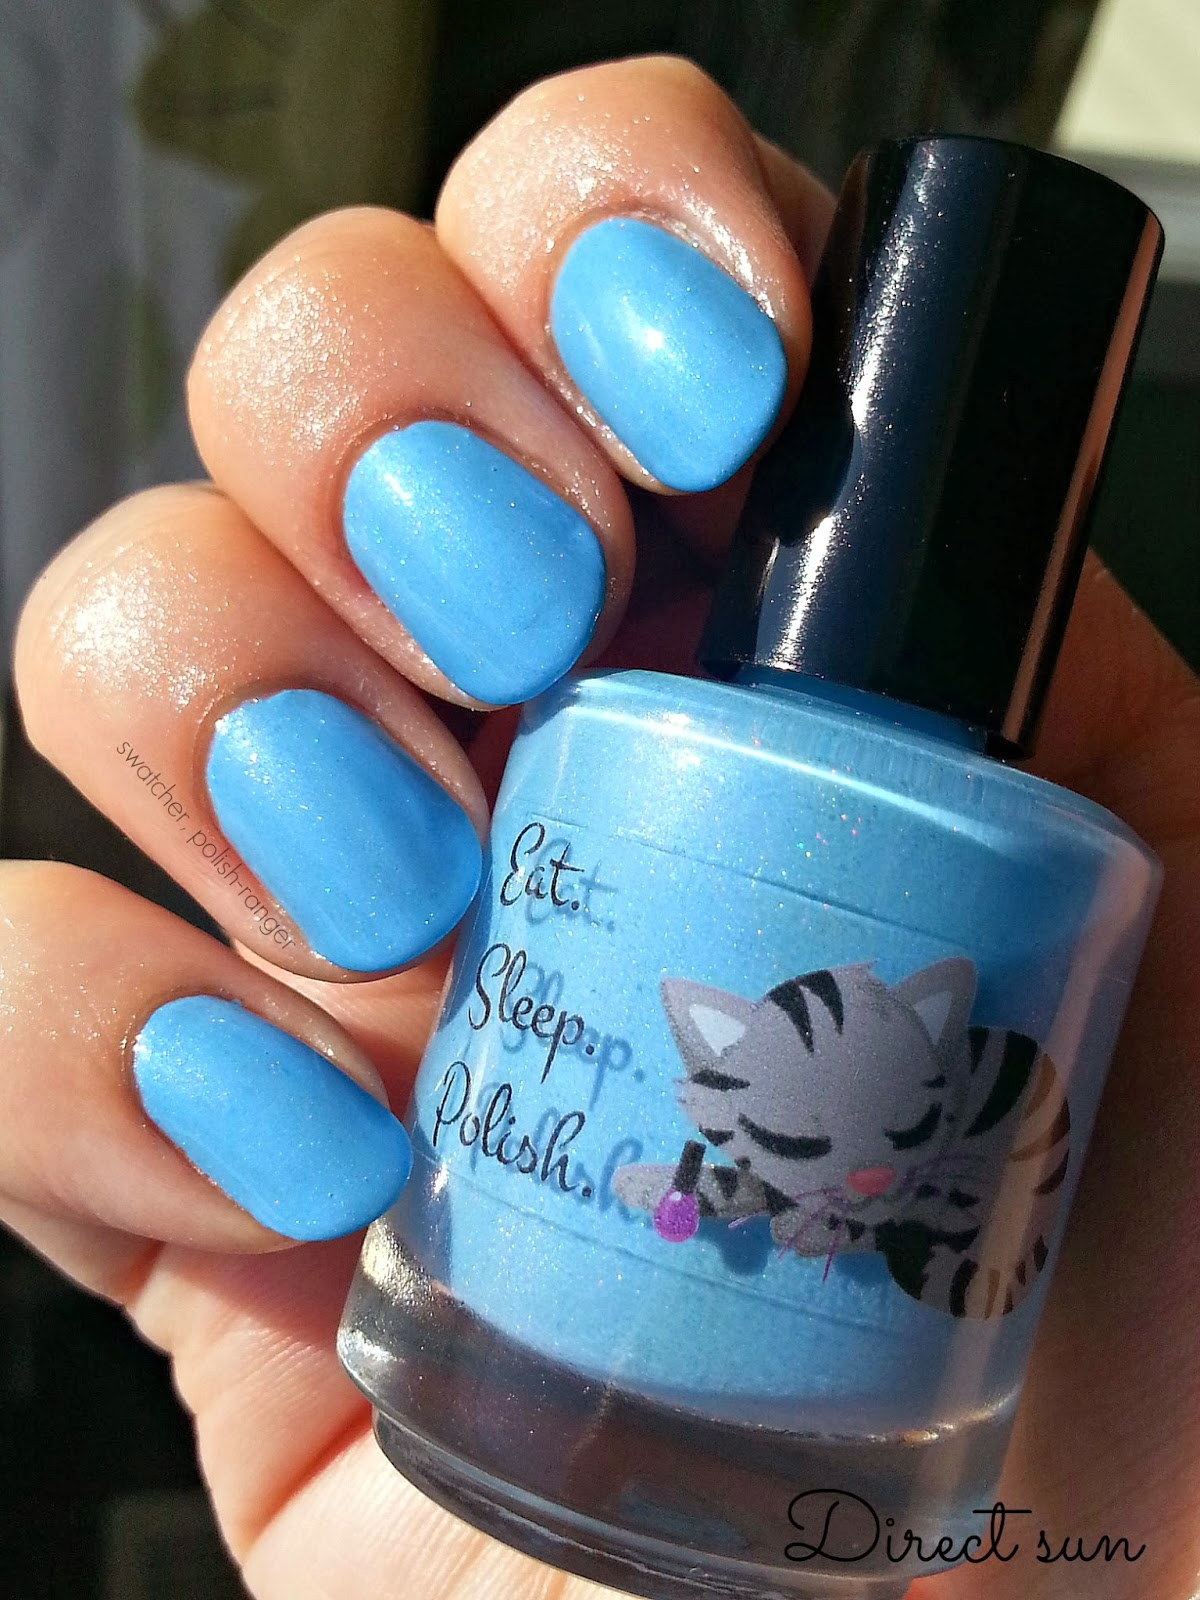 Eat Sleep Polish Endless Sky swatch